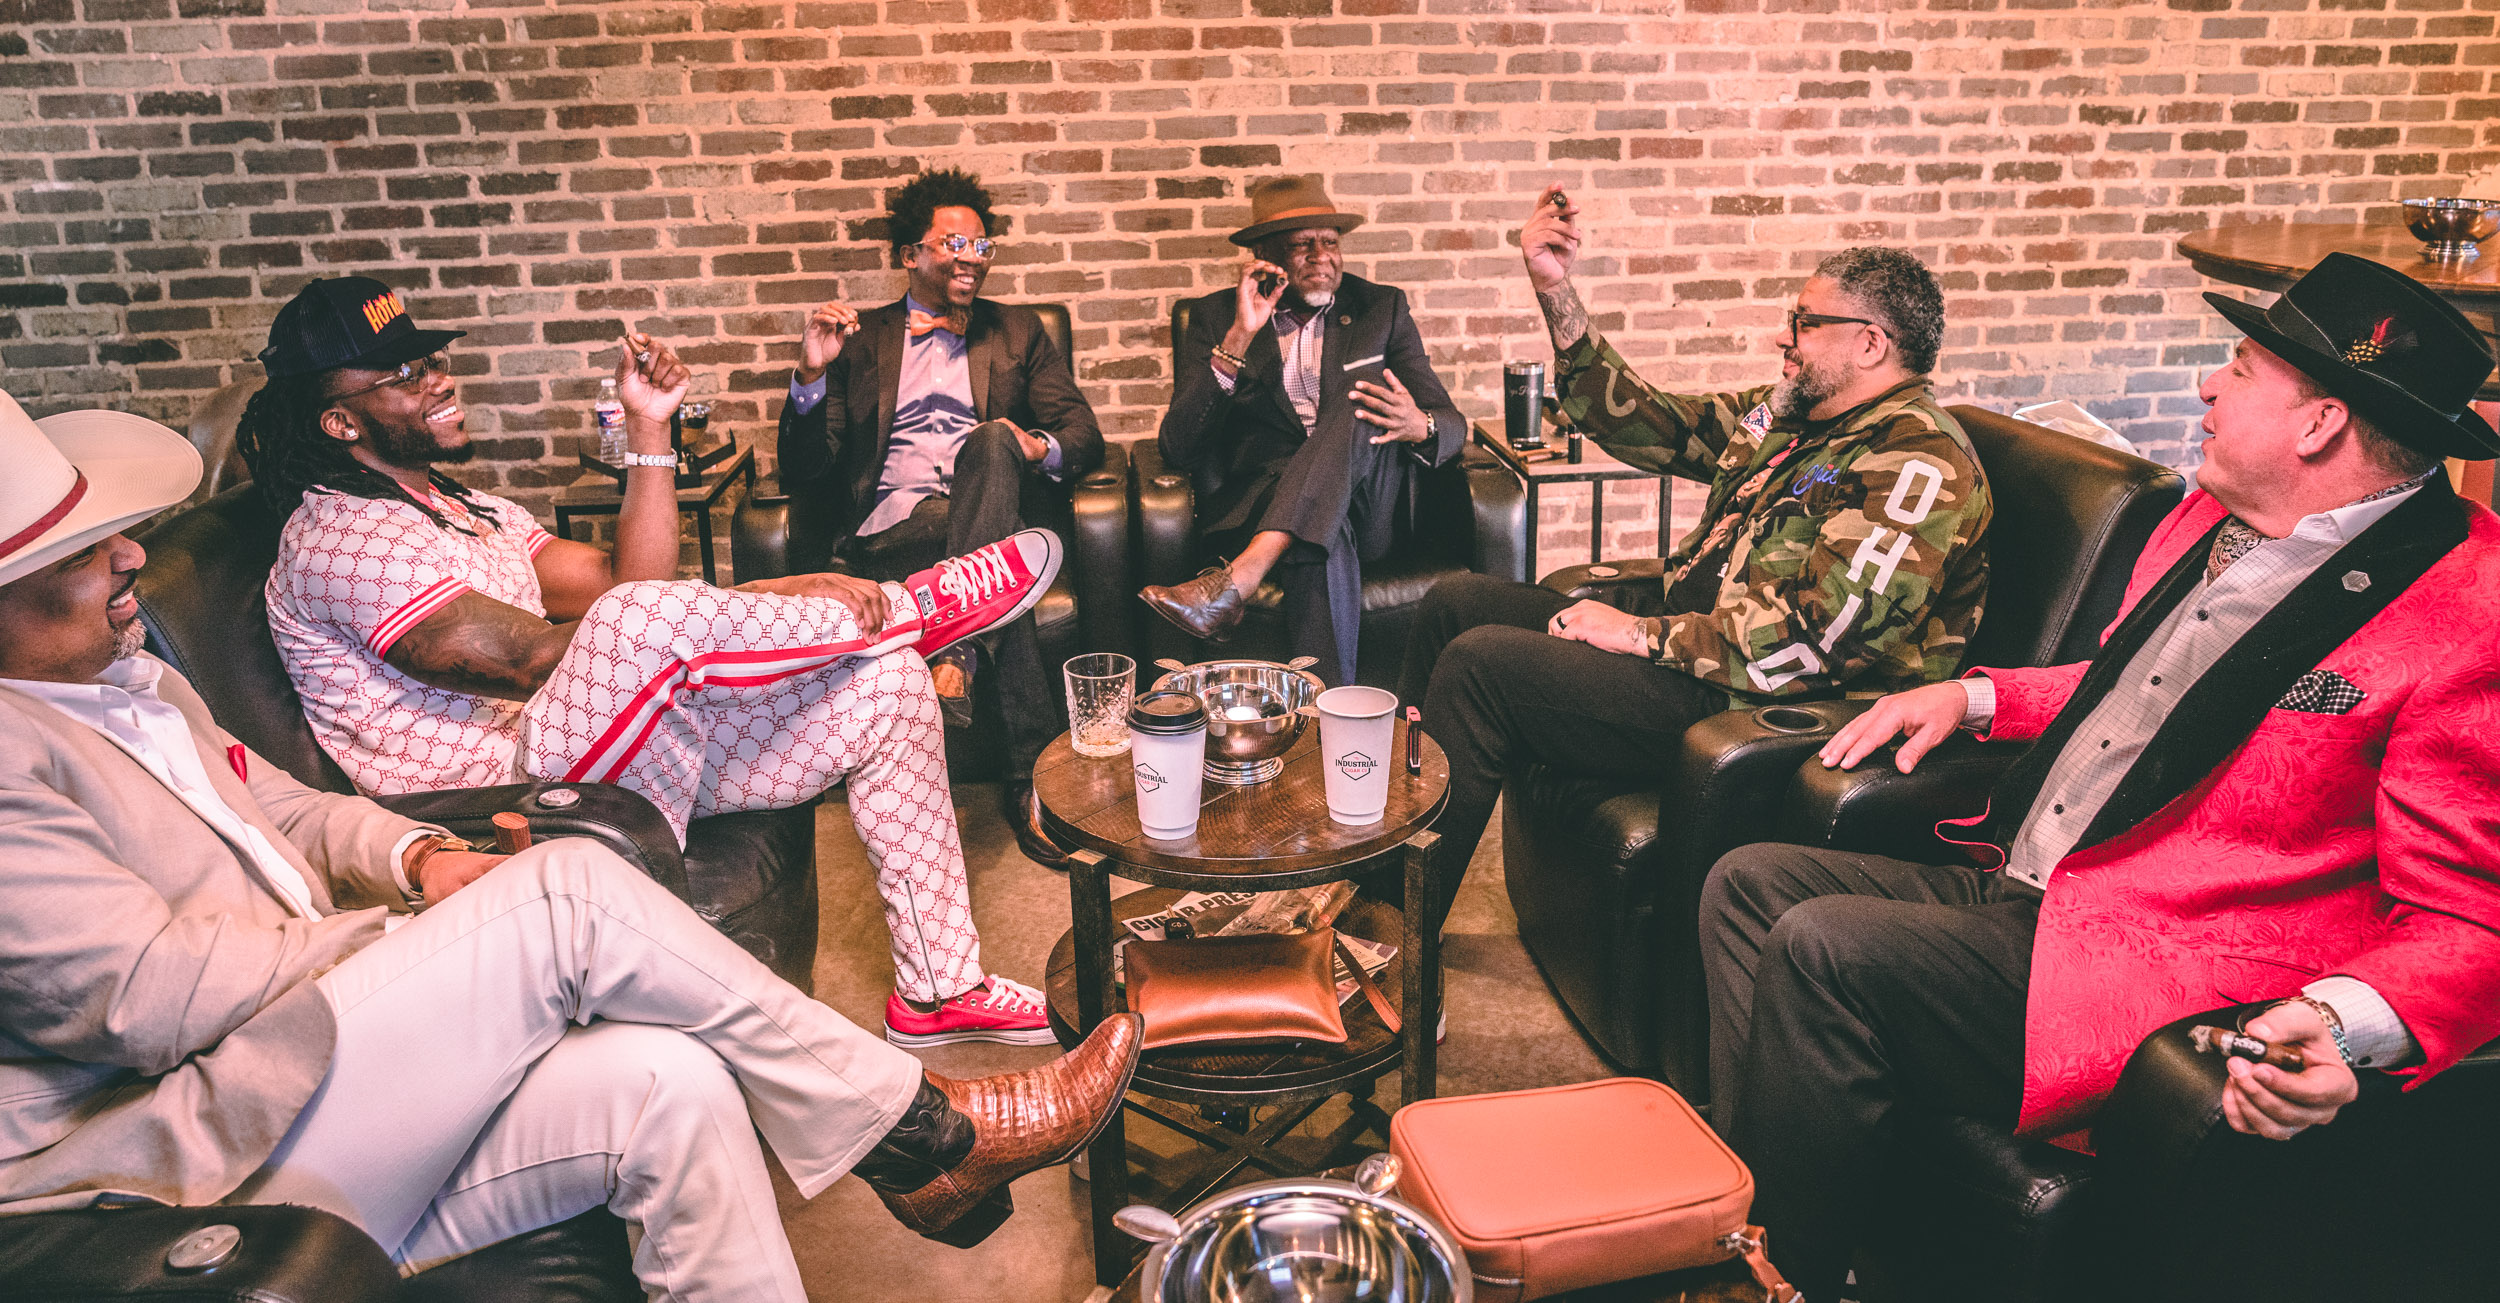 Industrial Cigar Co. with Jaylon Smith, Cutz Damato, Dave Frakes, RD Frazier, Lee Hardman, and Tyrone Demery